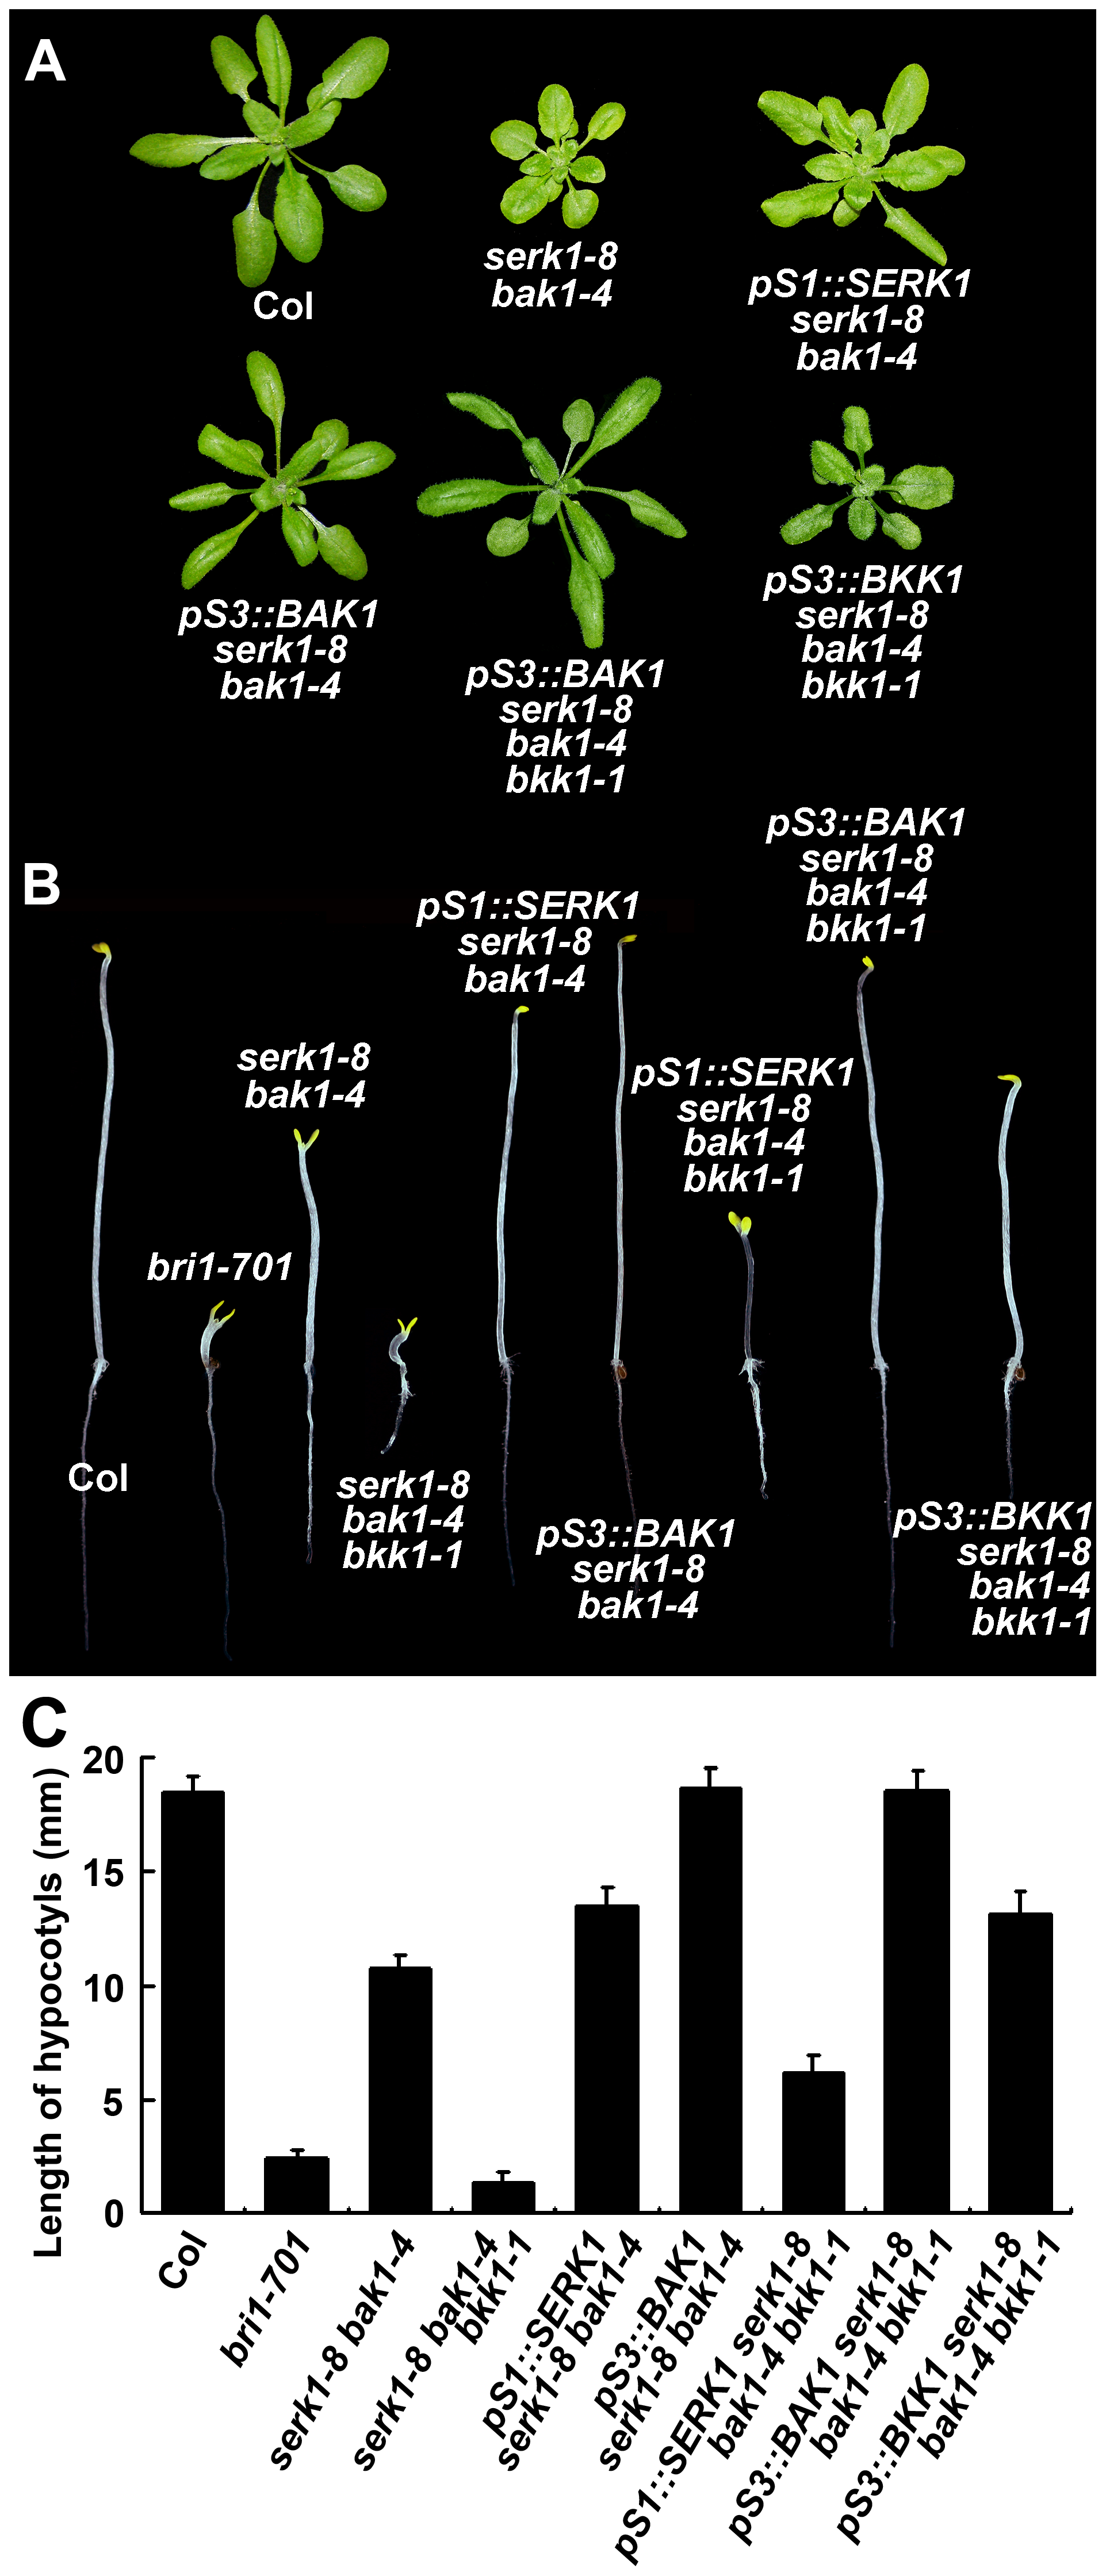 The phenotypes of <i>SERK</i> mutants can be complemented by each of the <i>SERK</i>s.